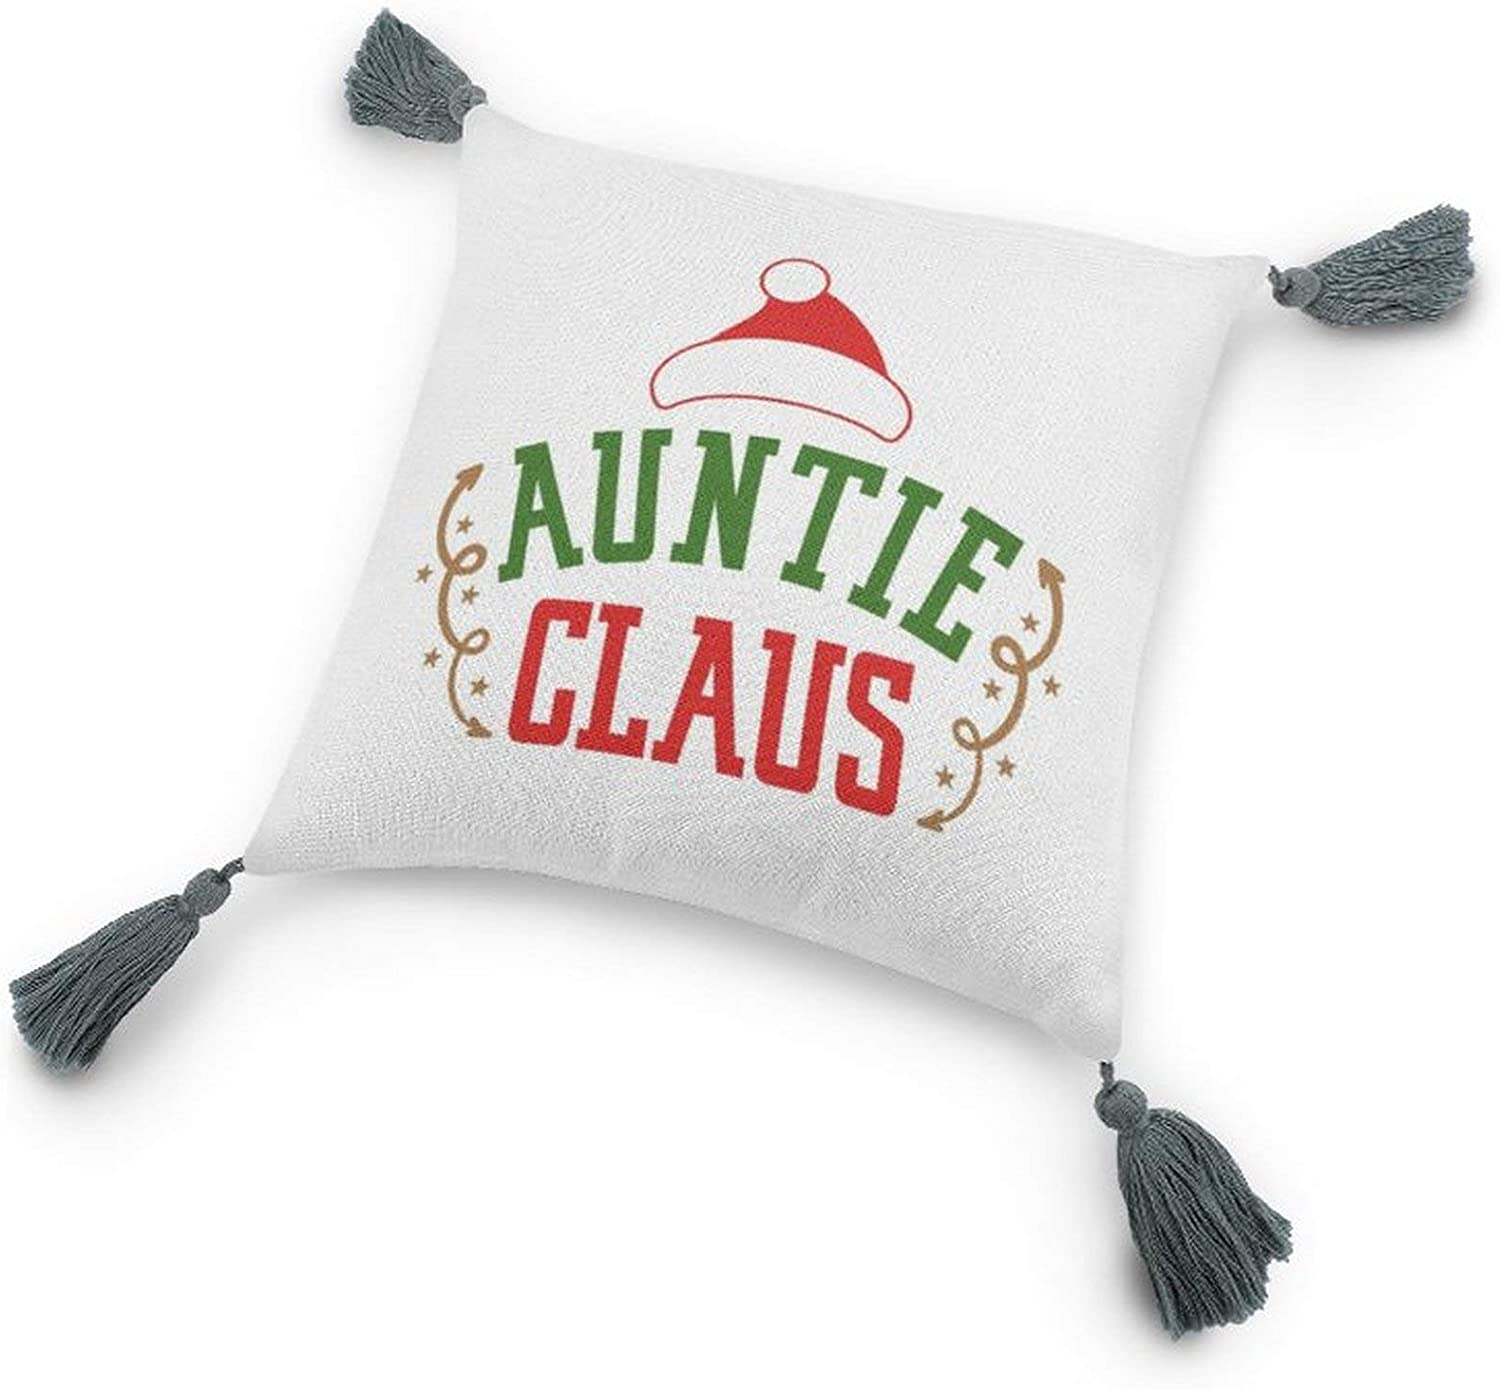 Auntie Claus Pillow Covers with Tassels, Cotton Linen Tassel Pillow,Decor Home Gift, 9.8